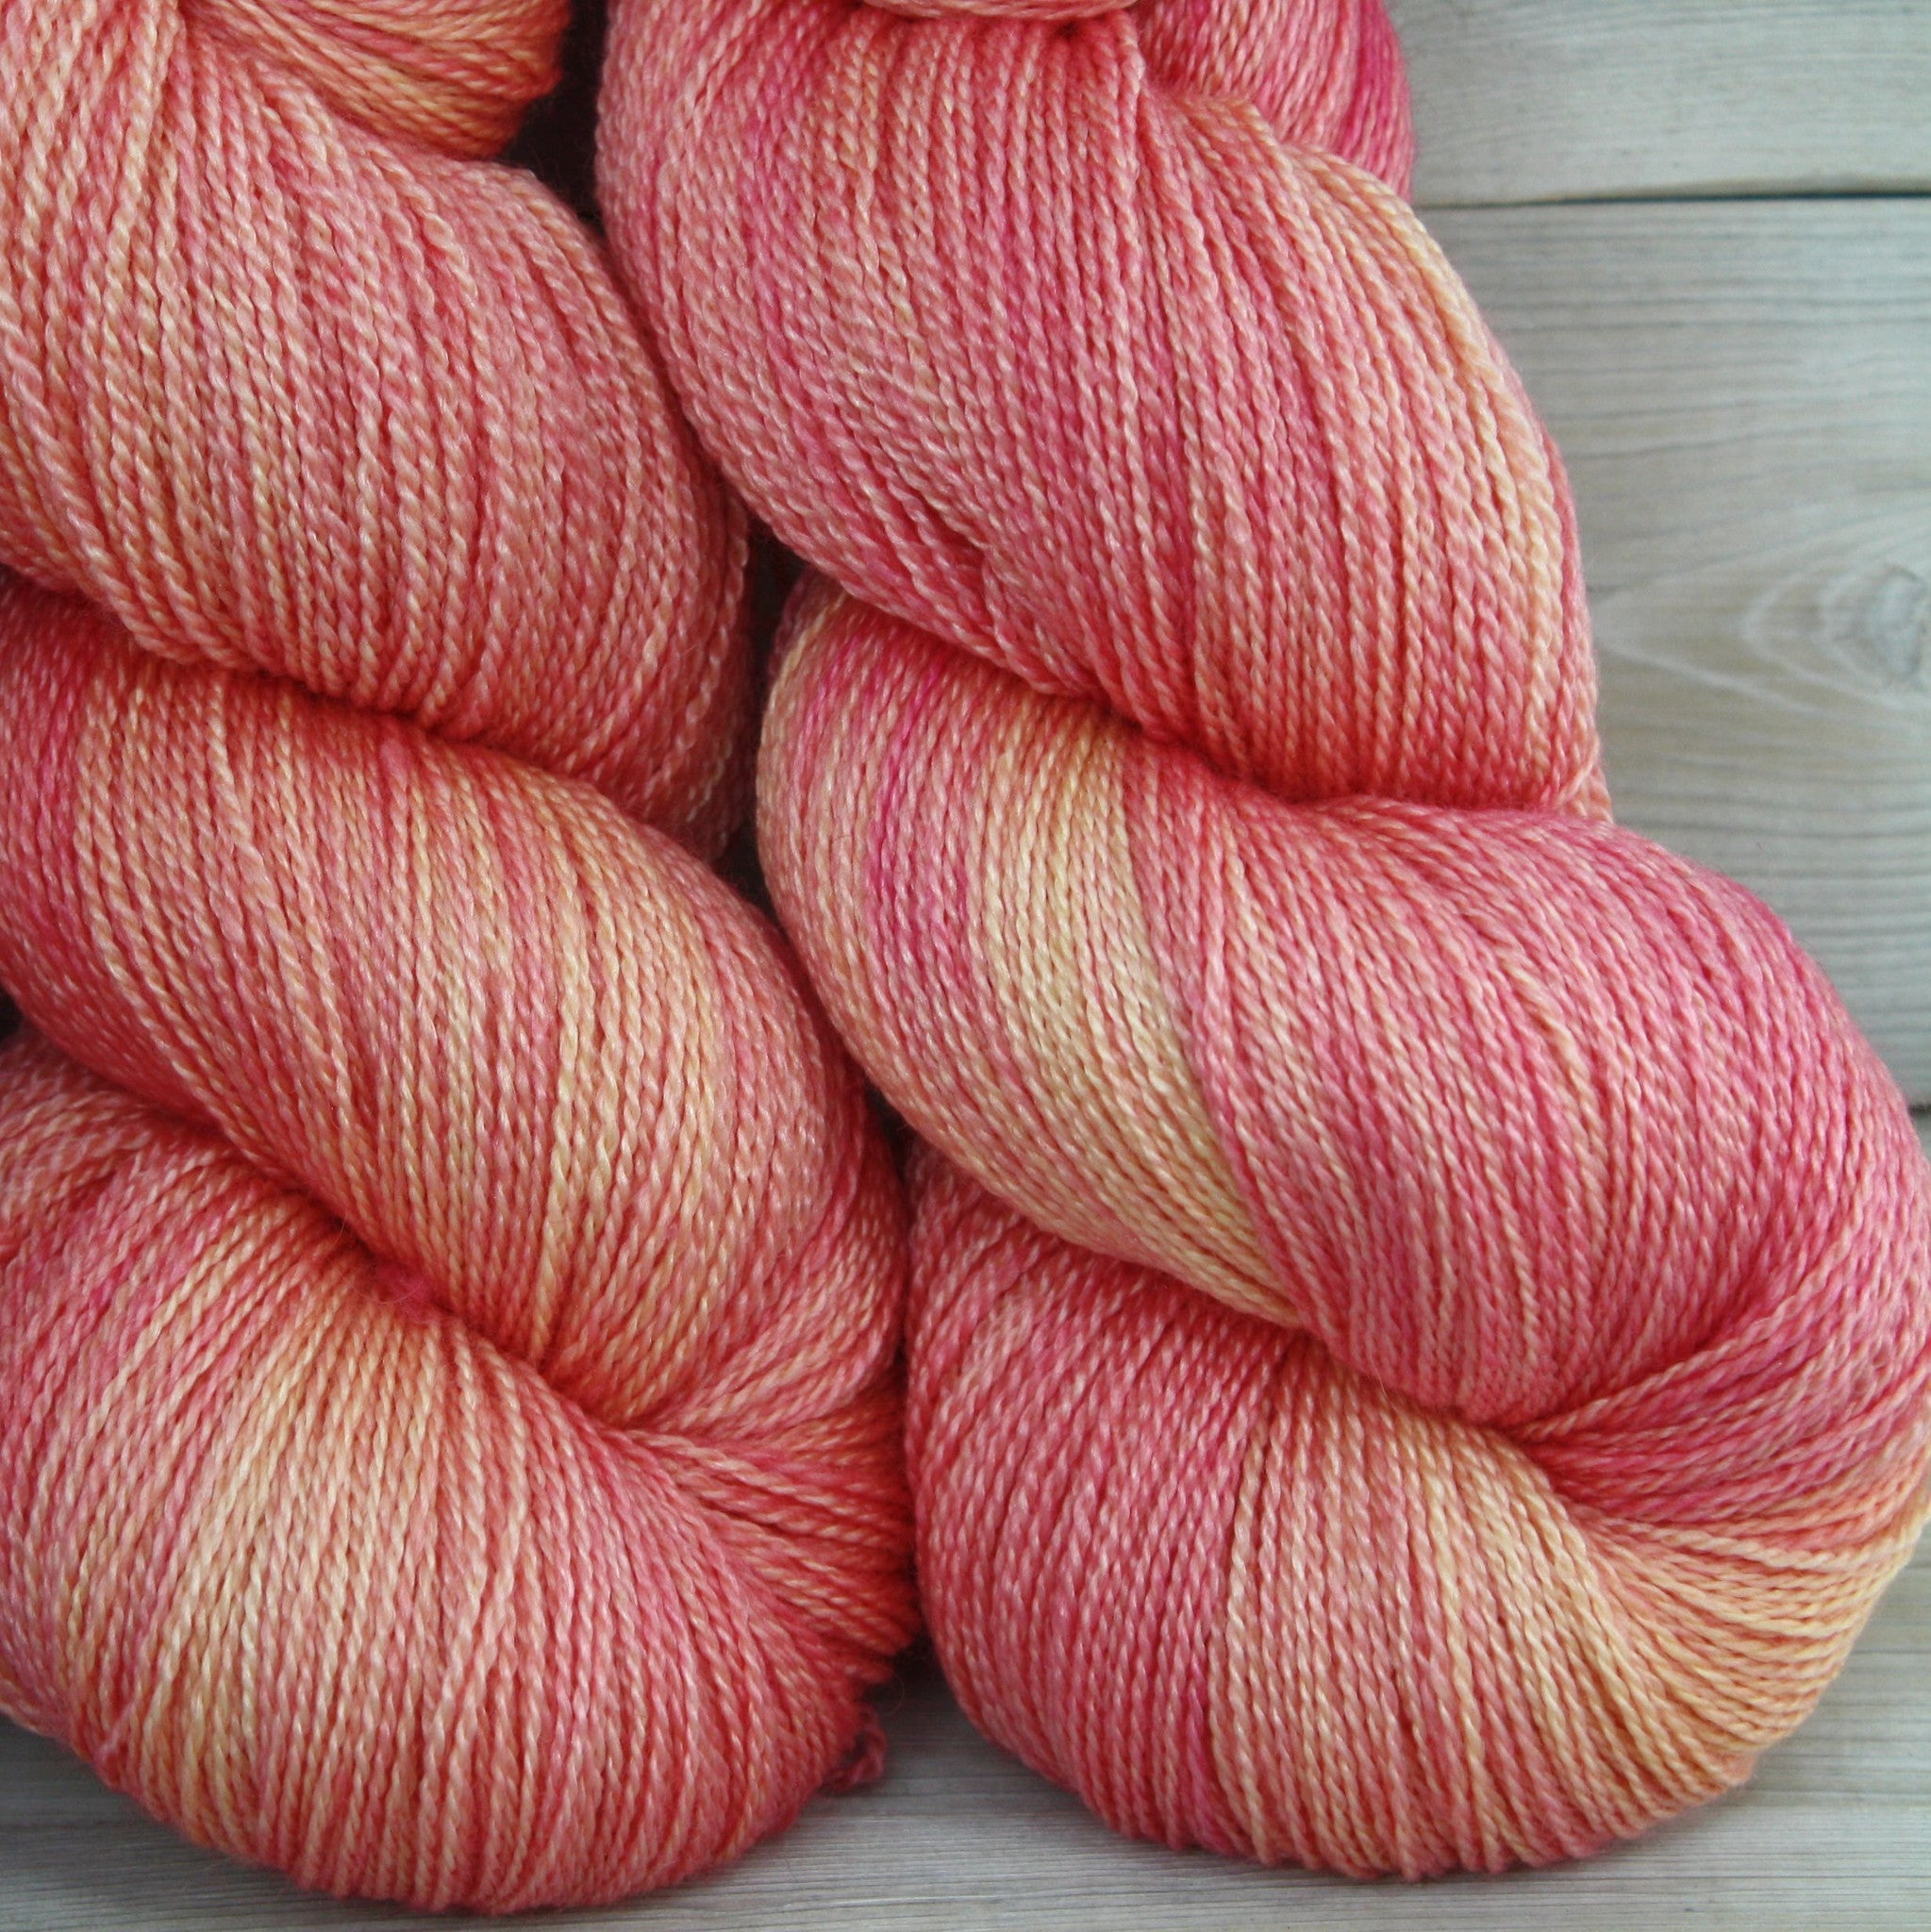 Starbright Yarn | Colorway: Sorbet